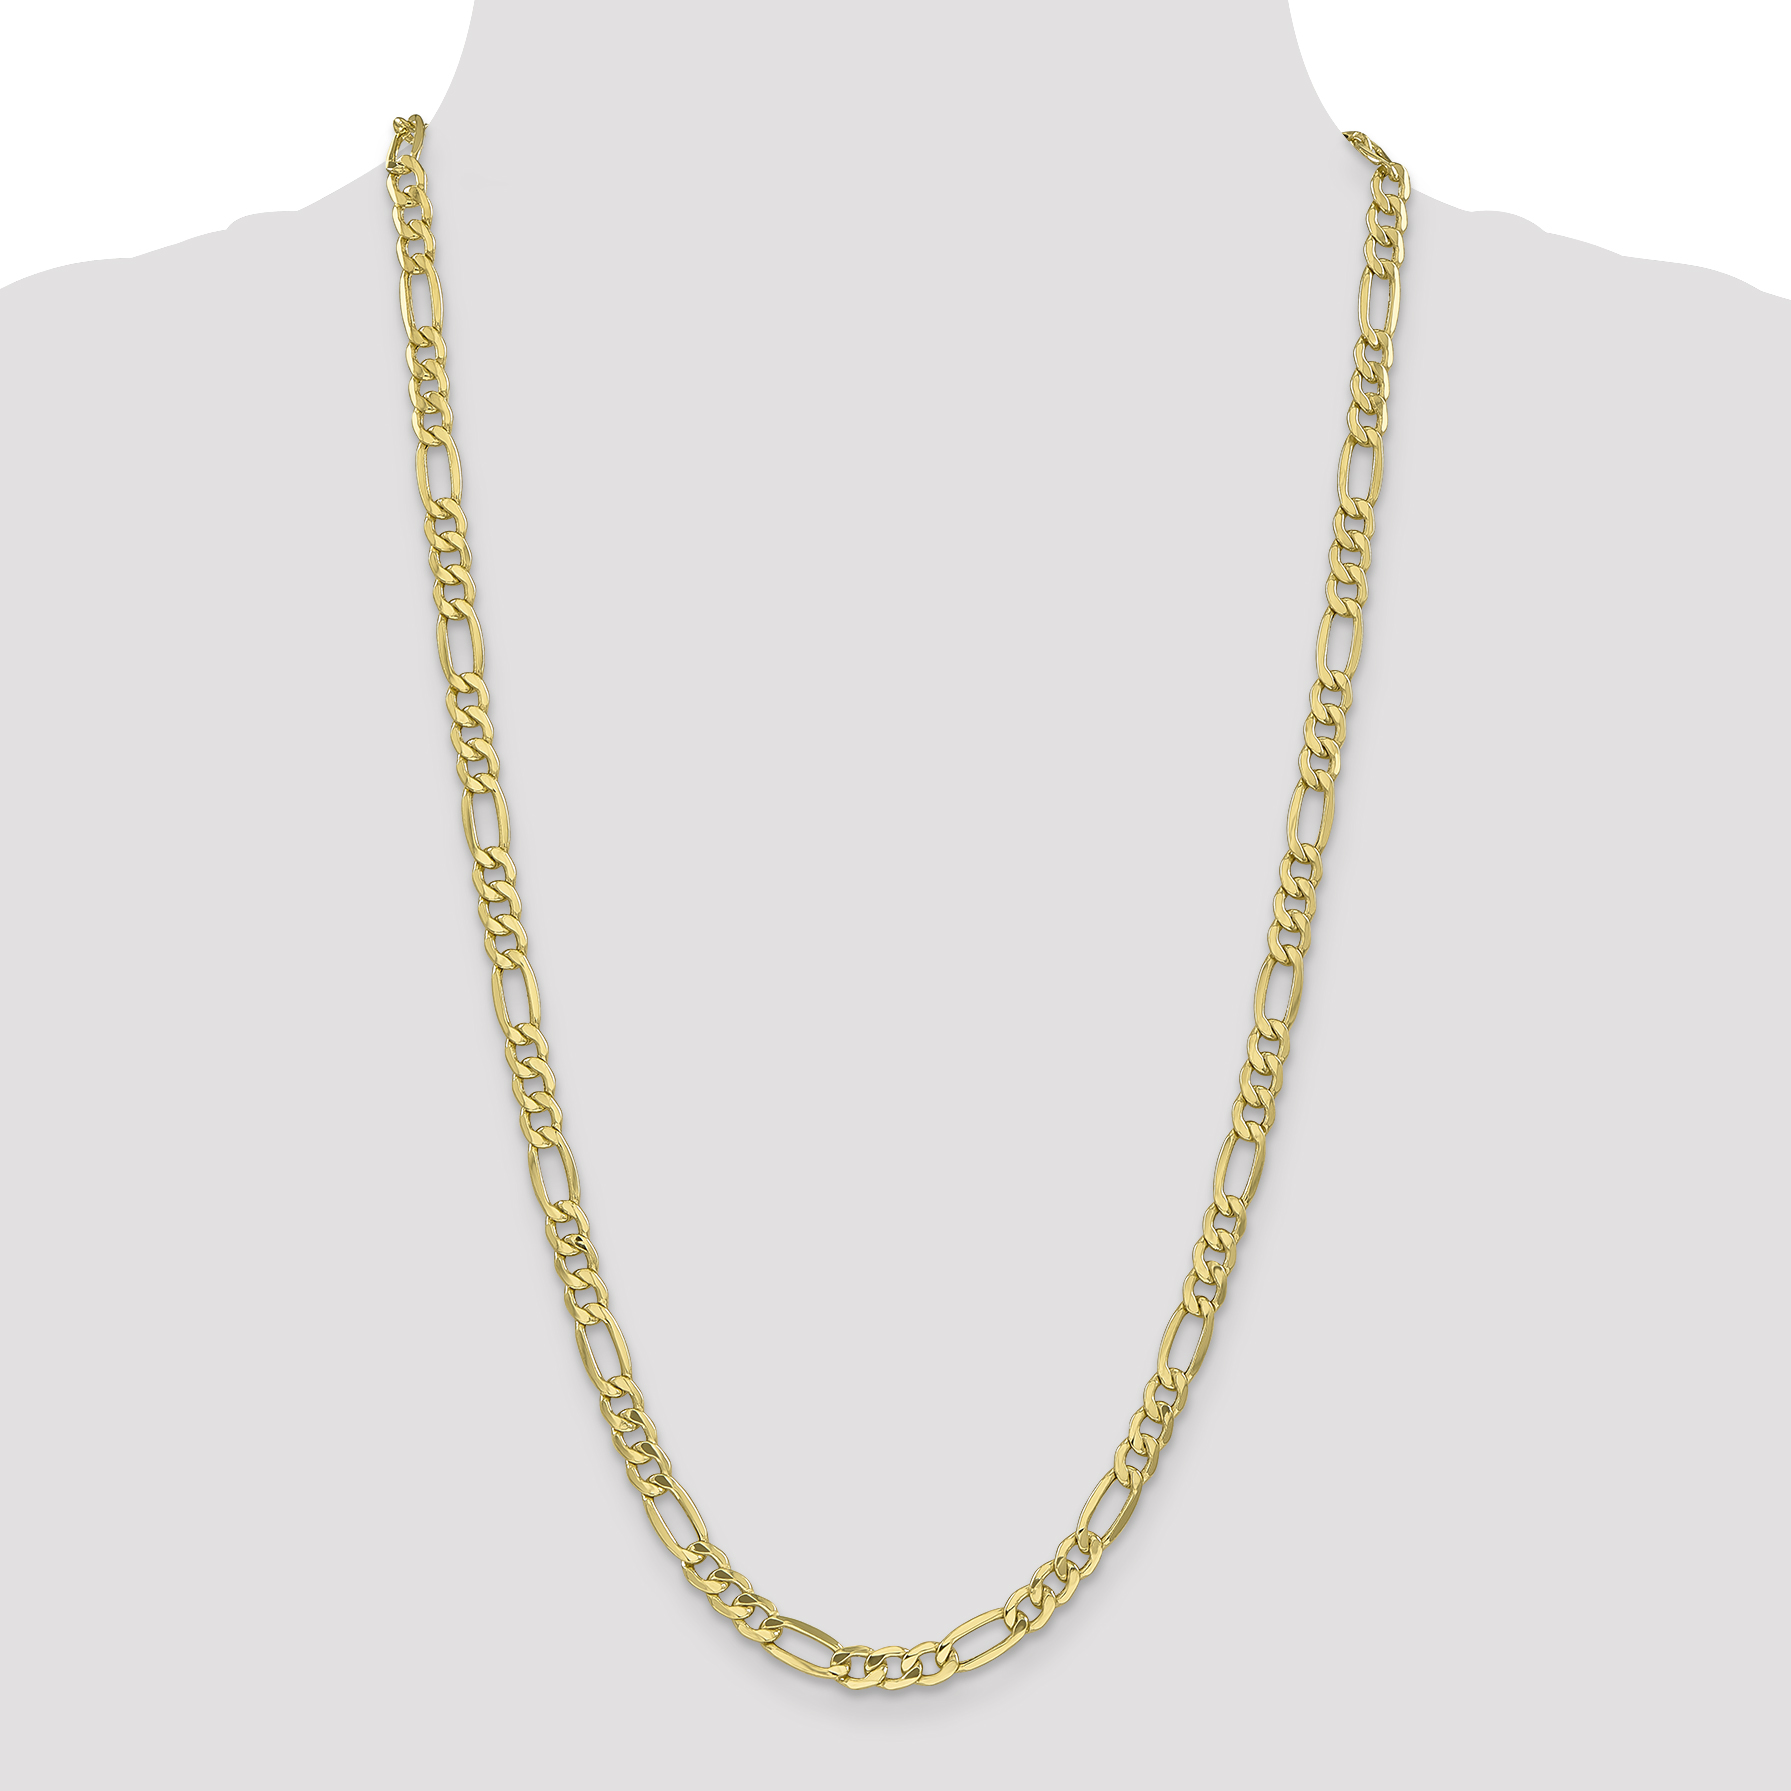 10K Yellow Gold 6mm Semi-Solid Figaro Chain 24 IN - image 4 of 5